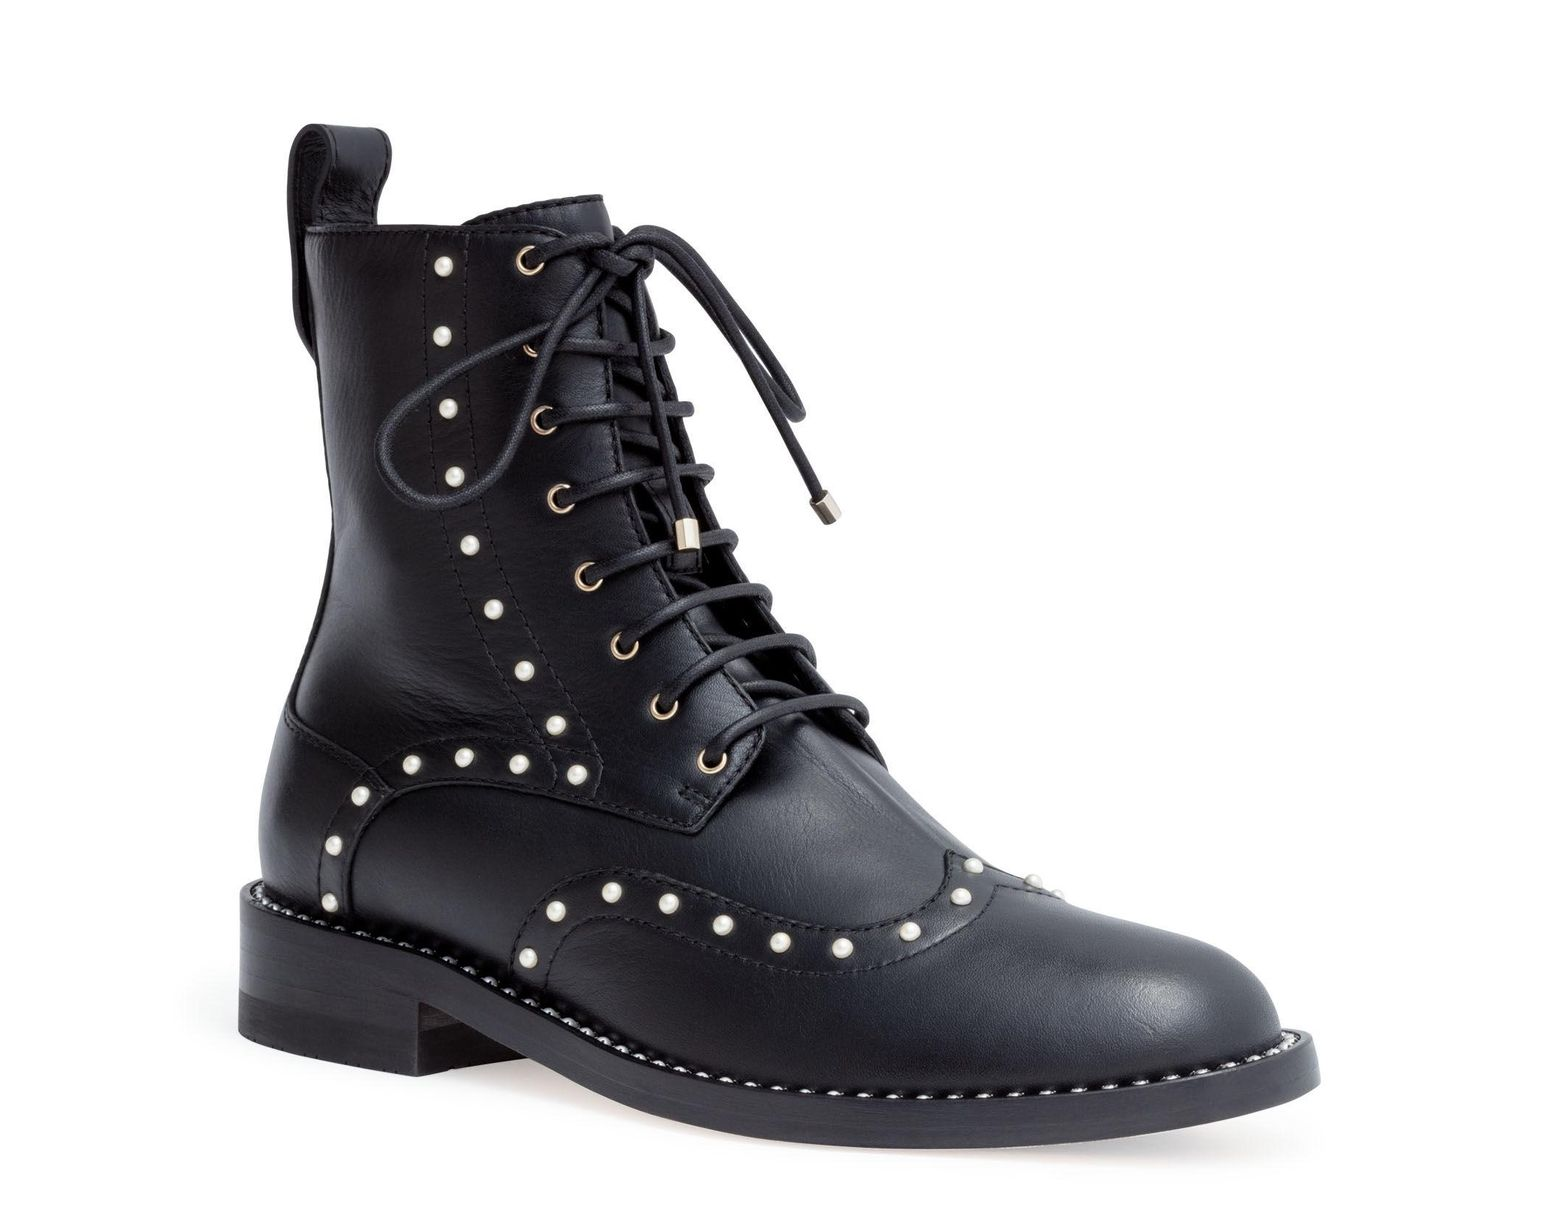 f79f6d14e Jimmy Choo Hanah 10 Black Leather Pearl Boots in Black - Save 59% - Lyst